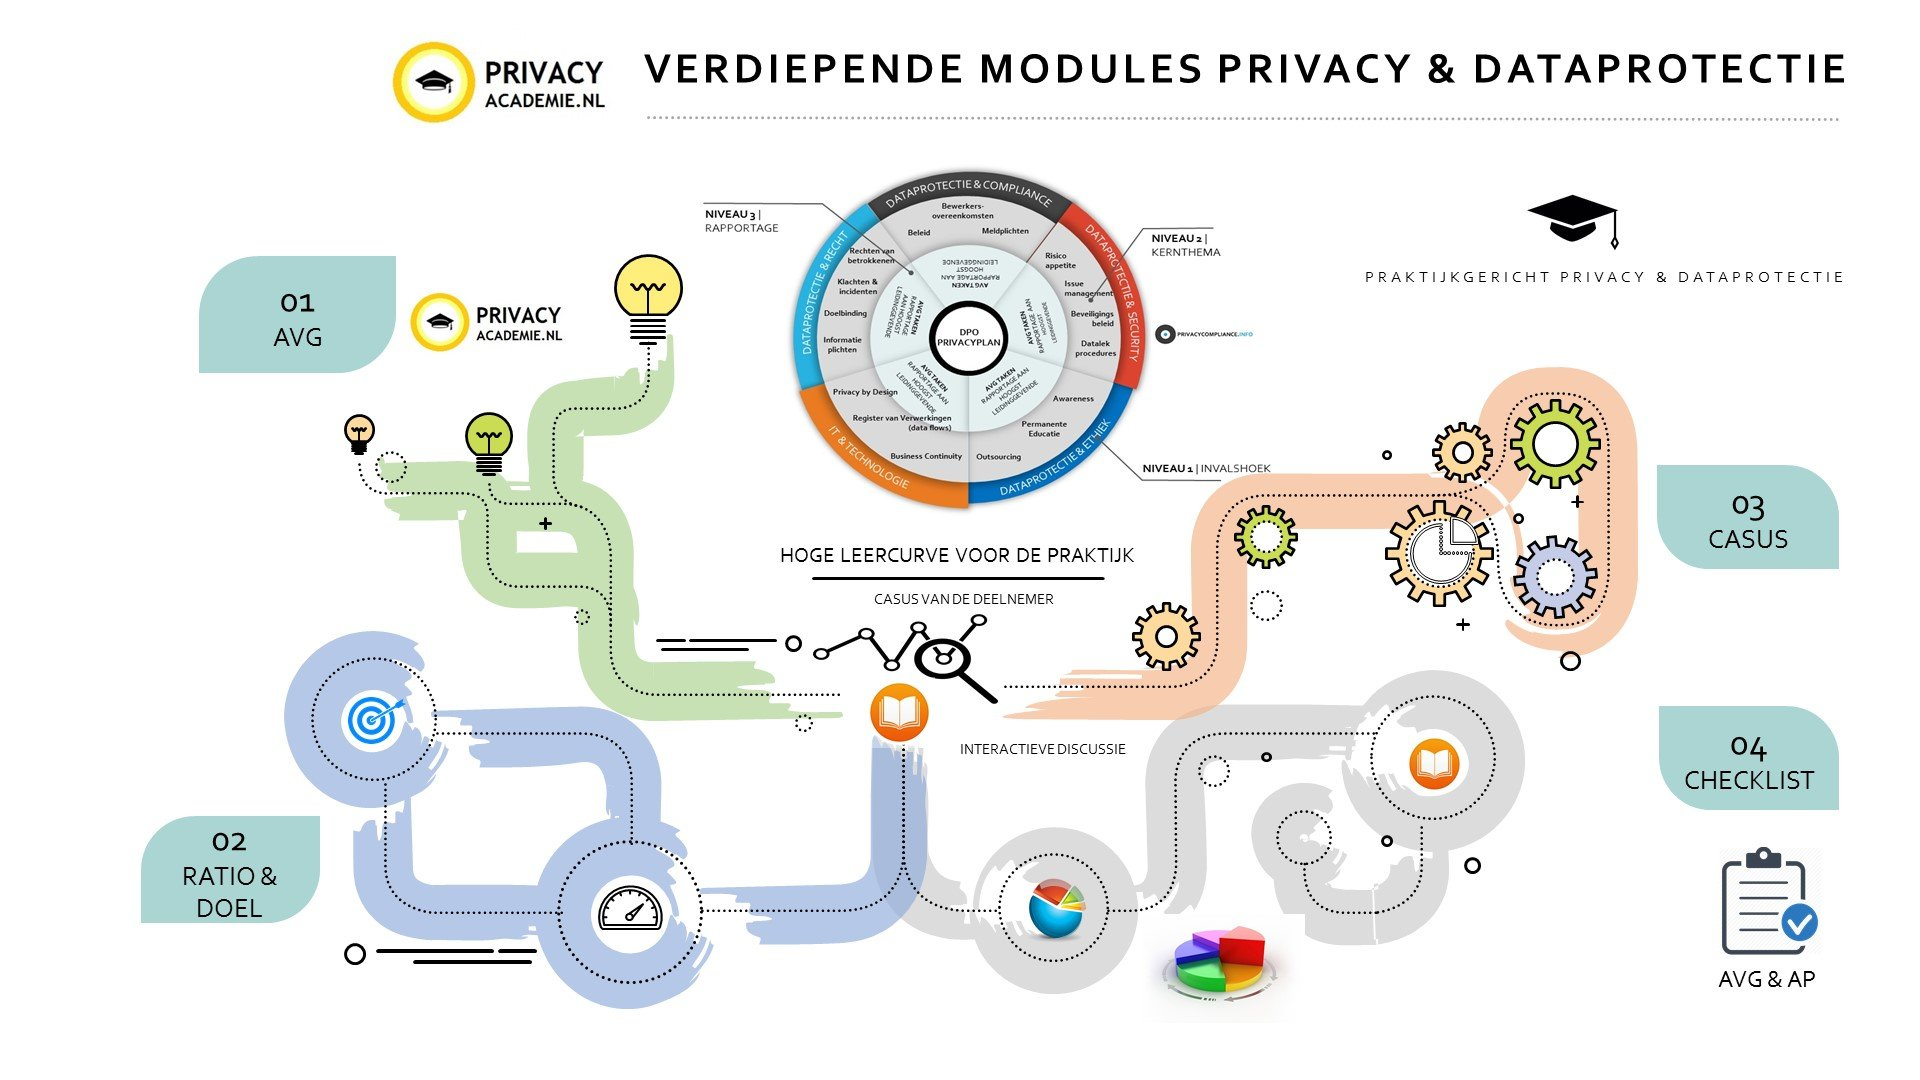 PRIVACY ACADEMIE BEHANDELPLAN VERDIEPENDE MODULES